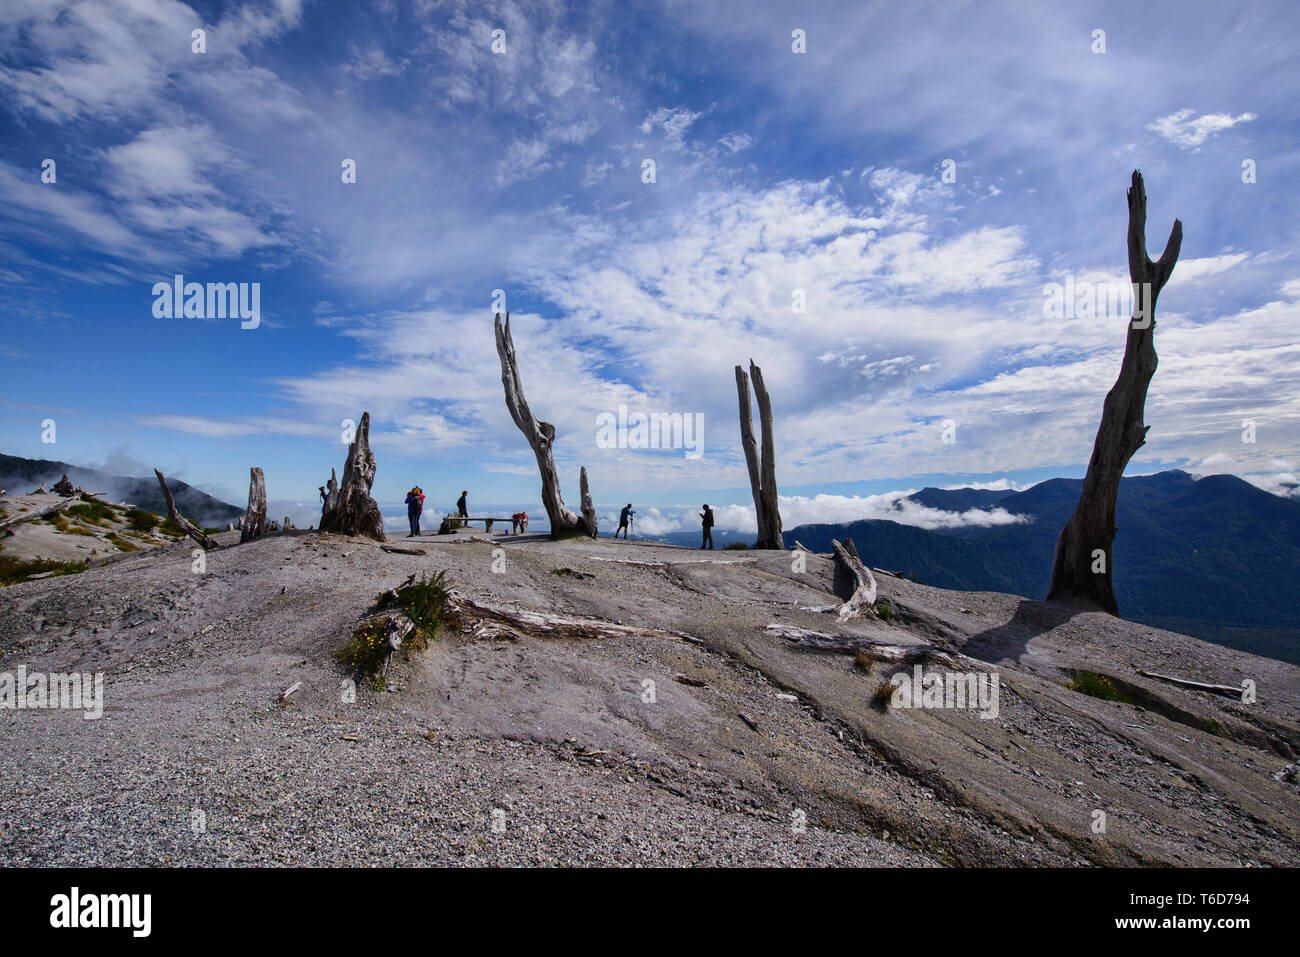 Trees destroyed by the Chaitén volcano eruption, Pumalin National Park, Patagonia, Chaitén, Chile Stock Photo